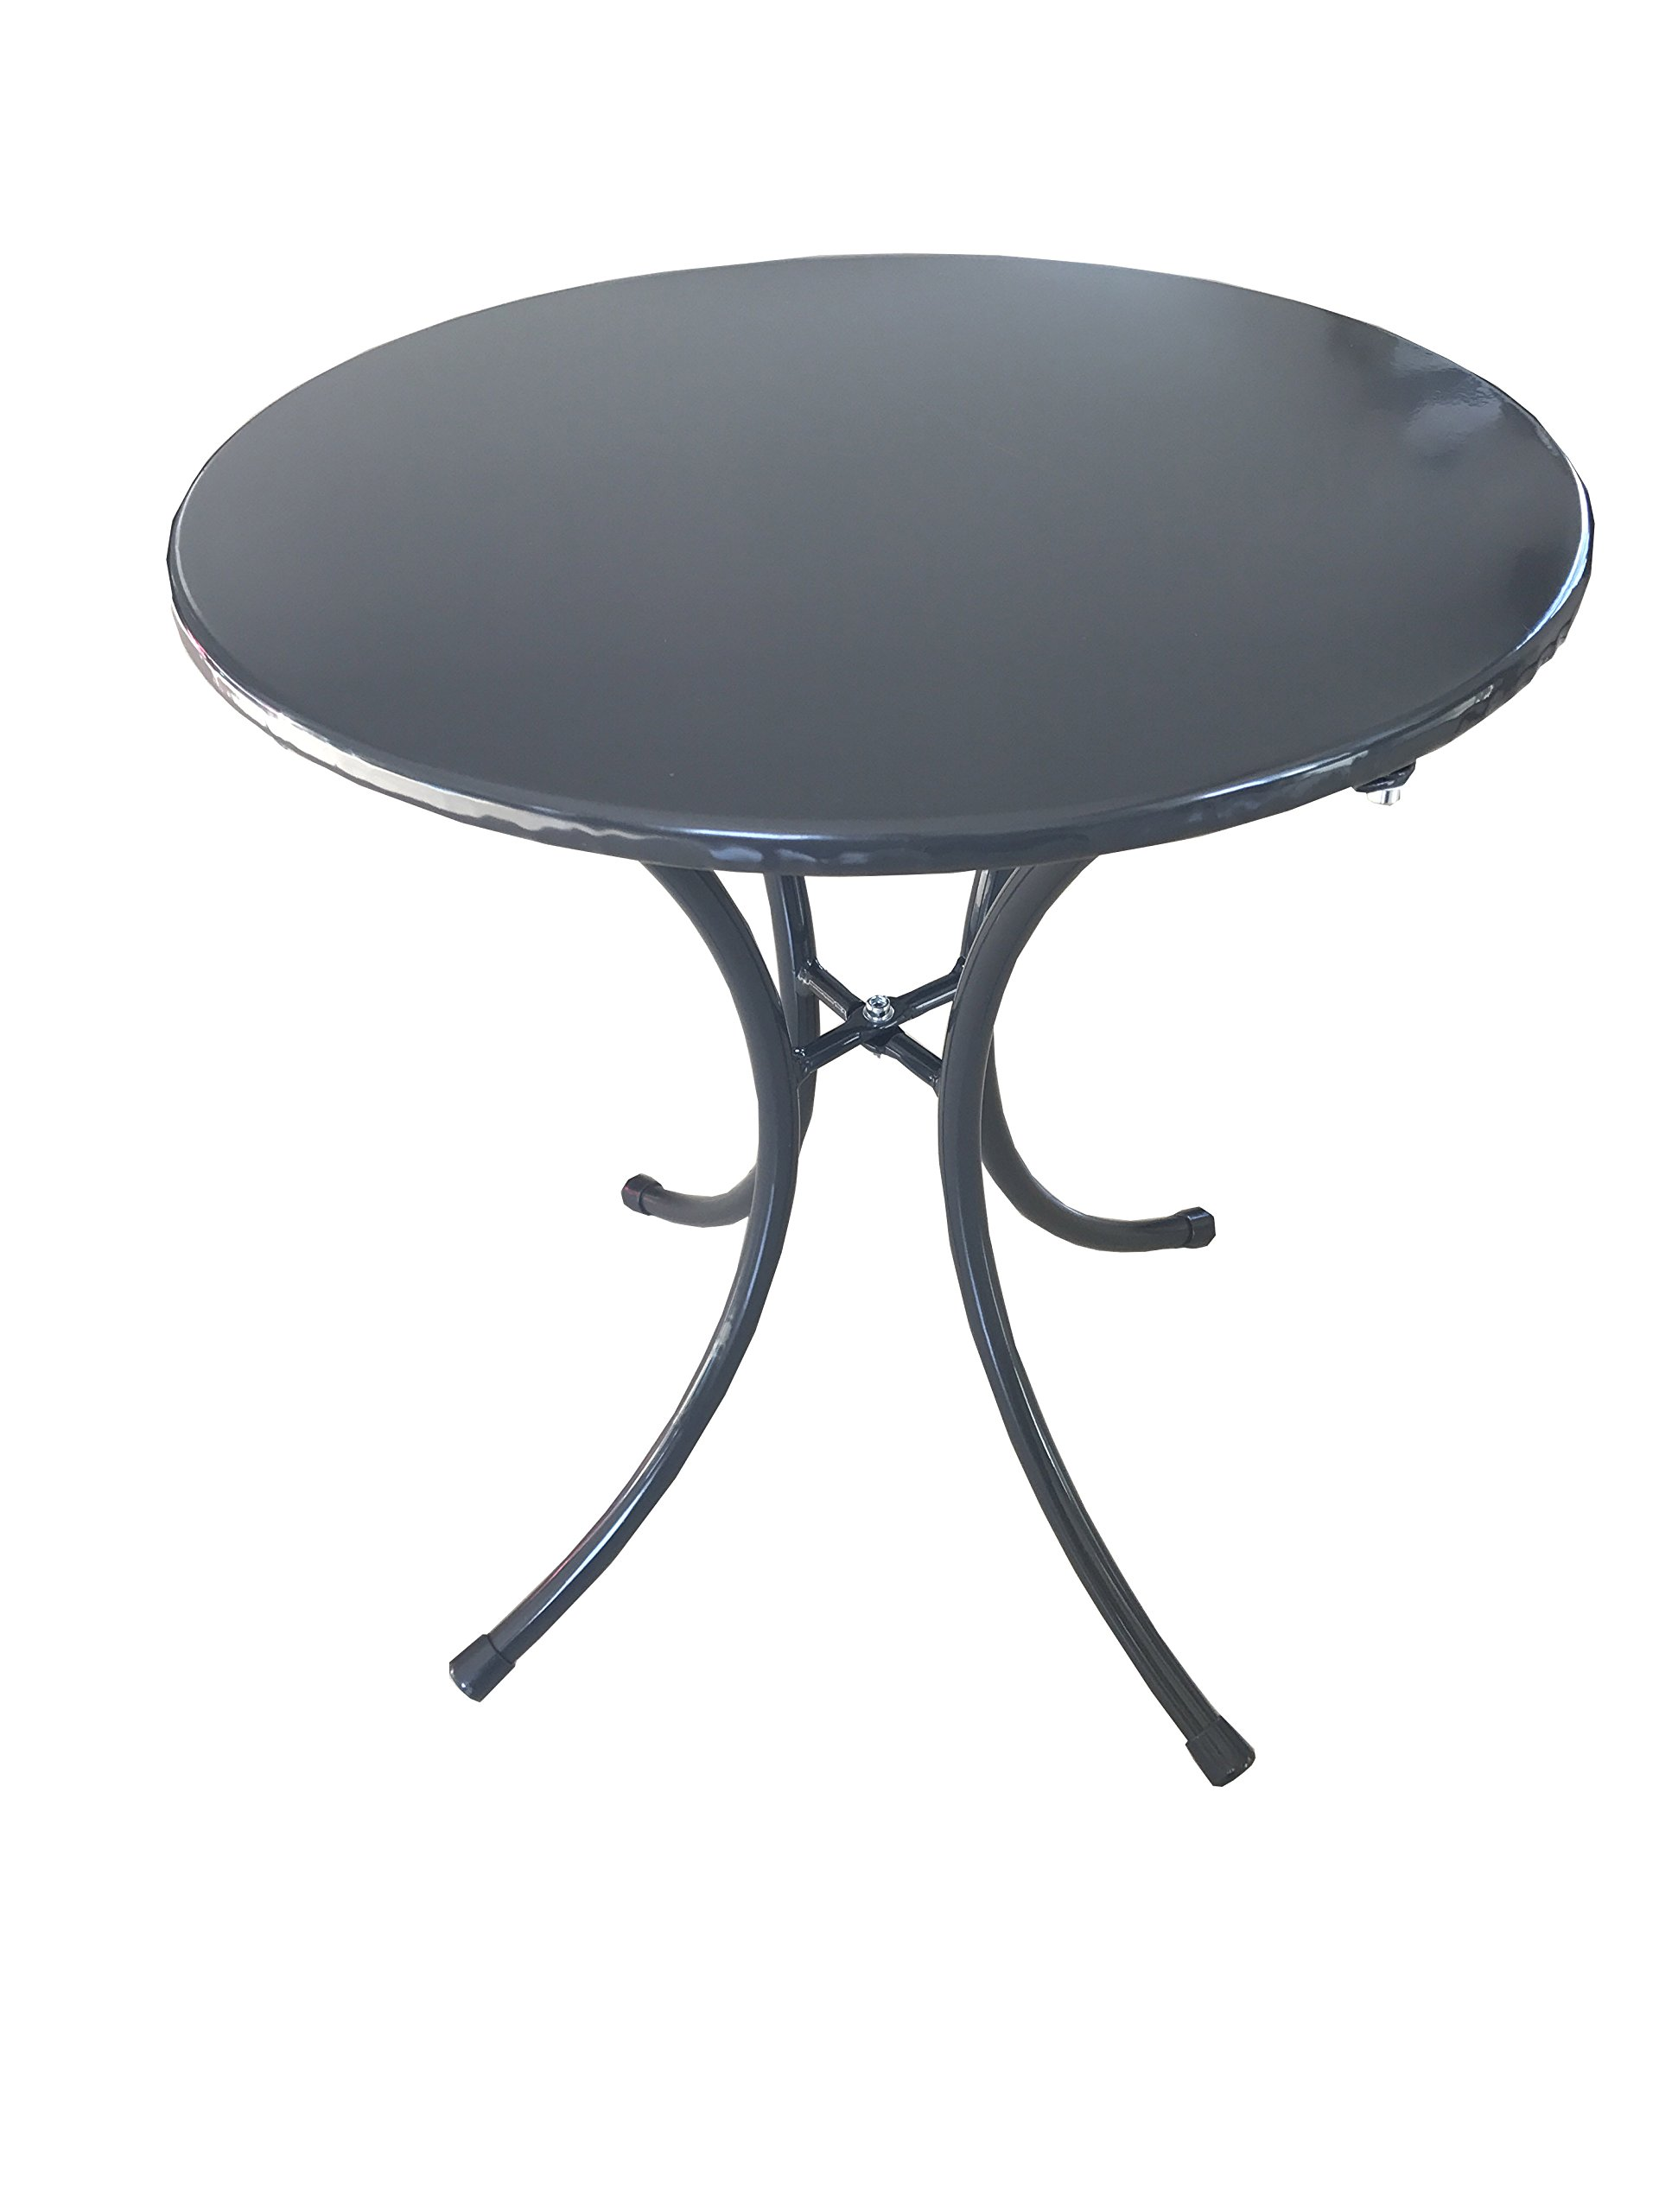 JDWD Small Round Side End Table, Sofa Table, UV-Protection Coffee Table, KD Tea Table, Gray